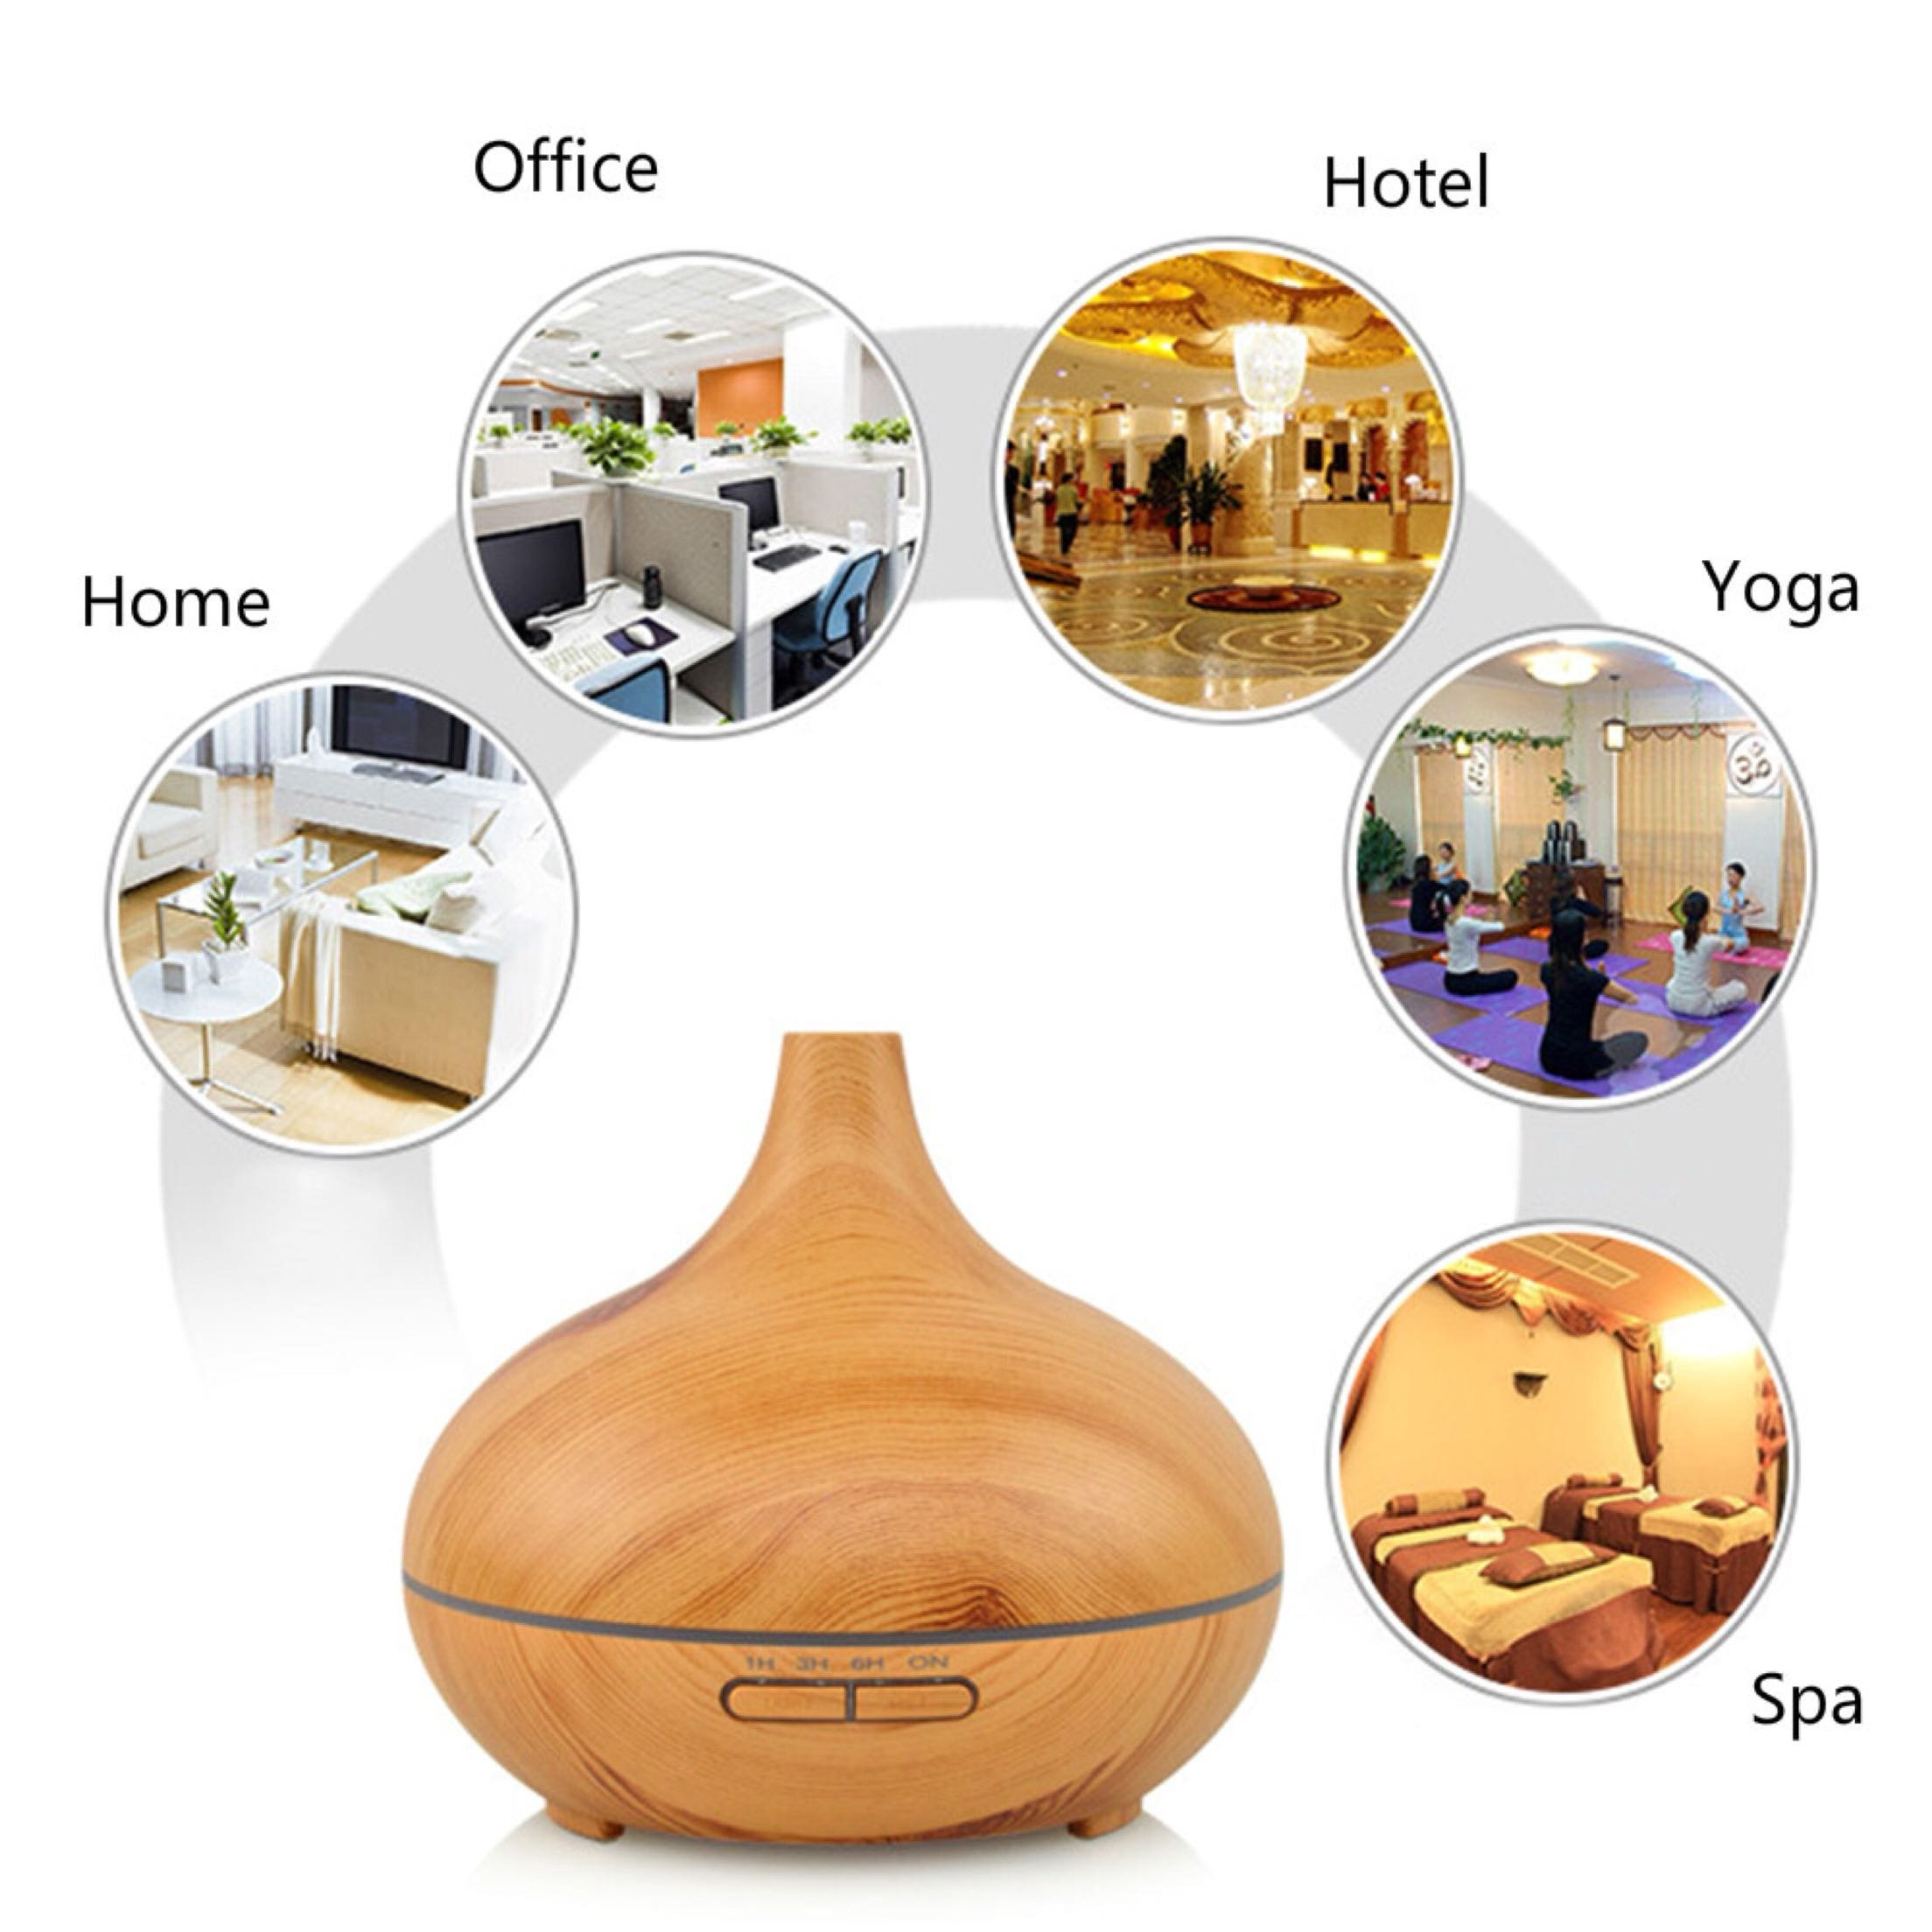 300ml Cool Mist Ultrasonic Humidifier, Aroma Essential Oil Diffuser, Waterless Auto Off, For Office Home Bedroom Living Room Study Yoga Spa (Wood Grain) by TuChang (Image #2)